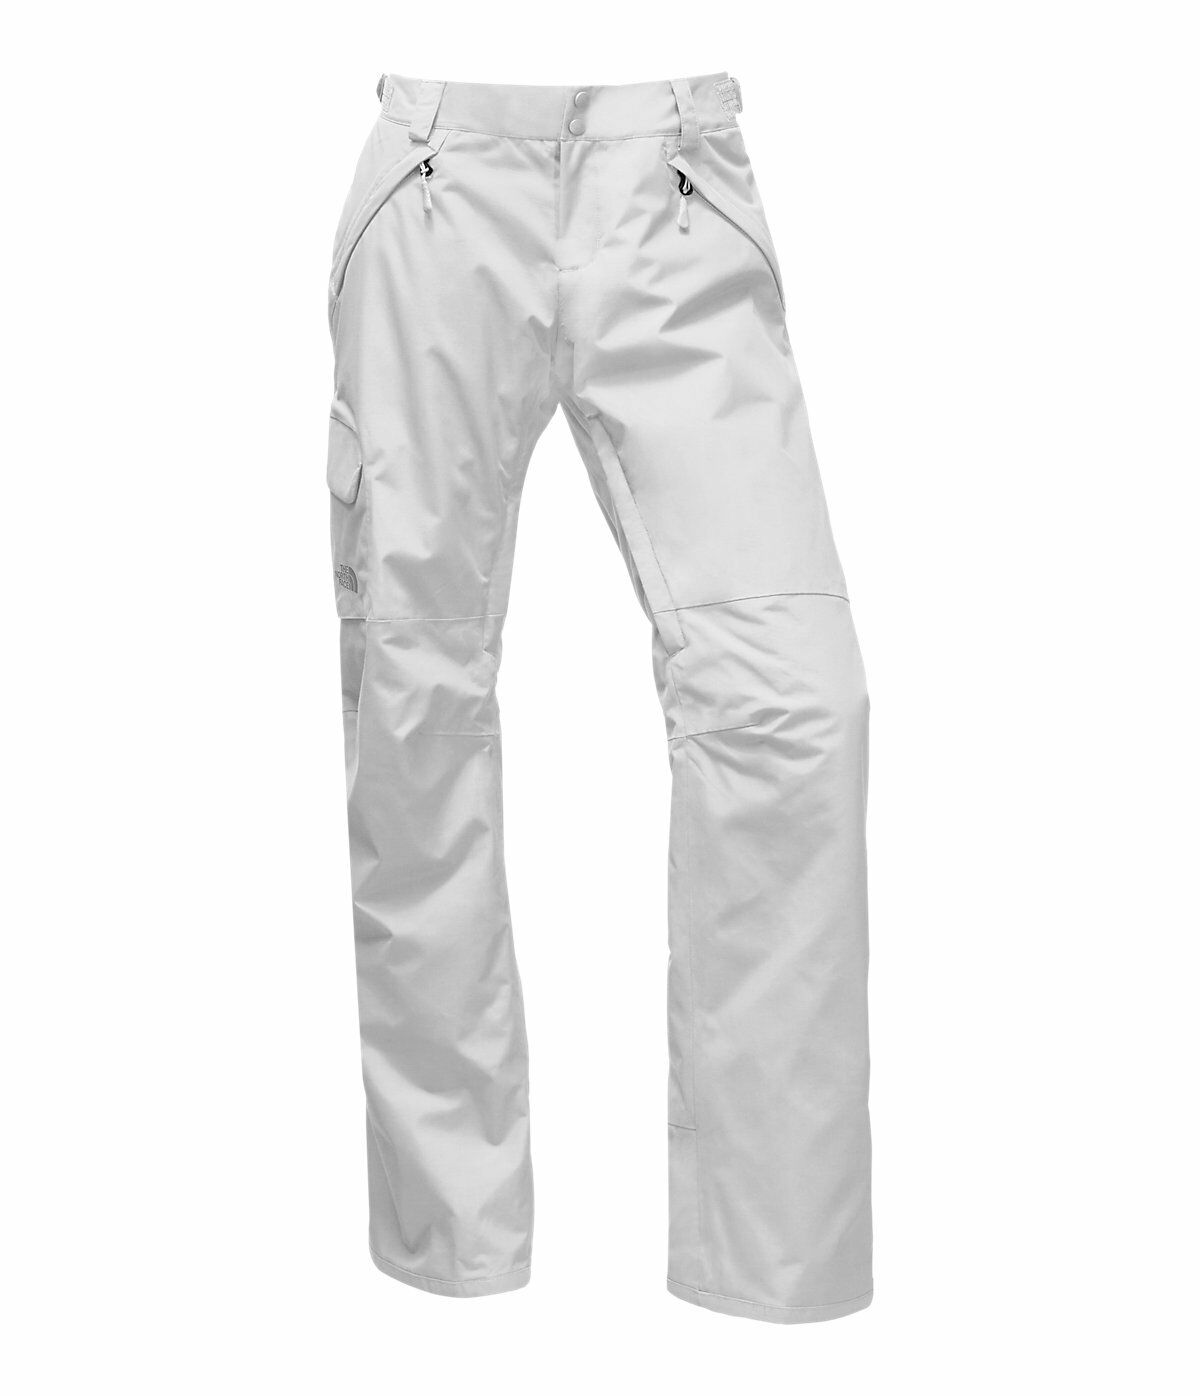 North Face Middle Yard hyvent Freedom, TNF blanco